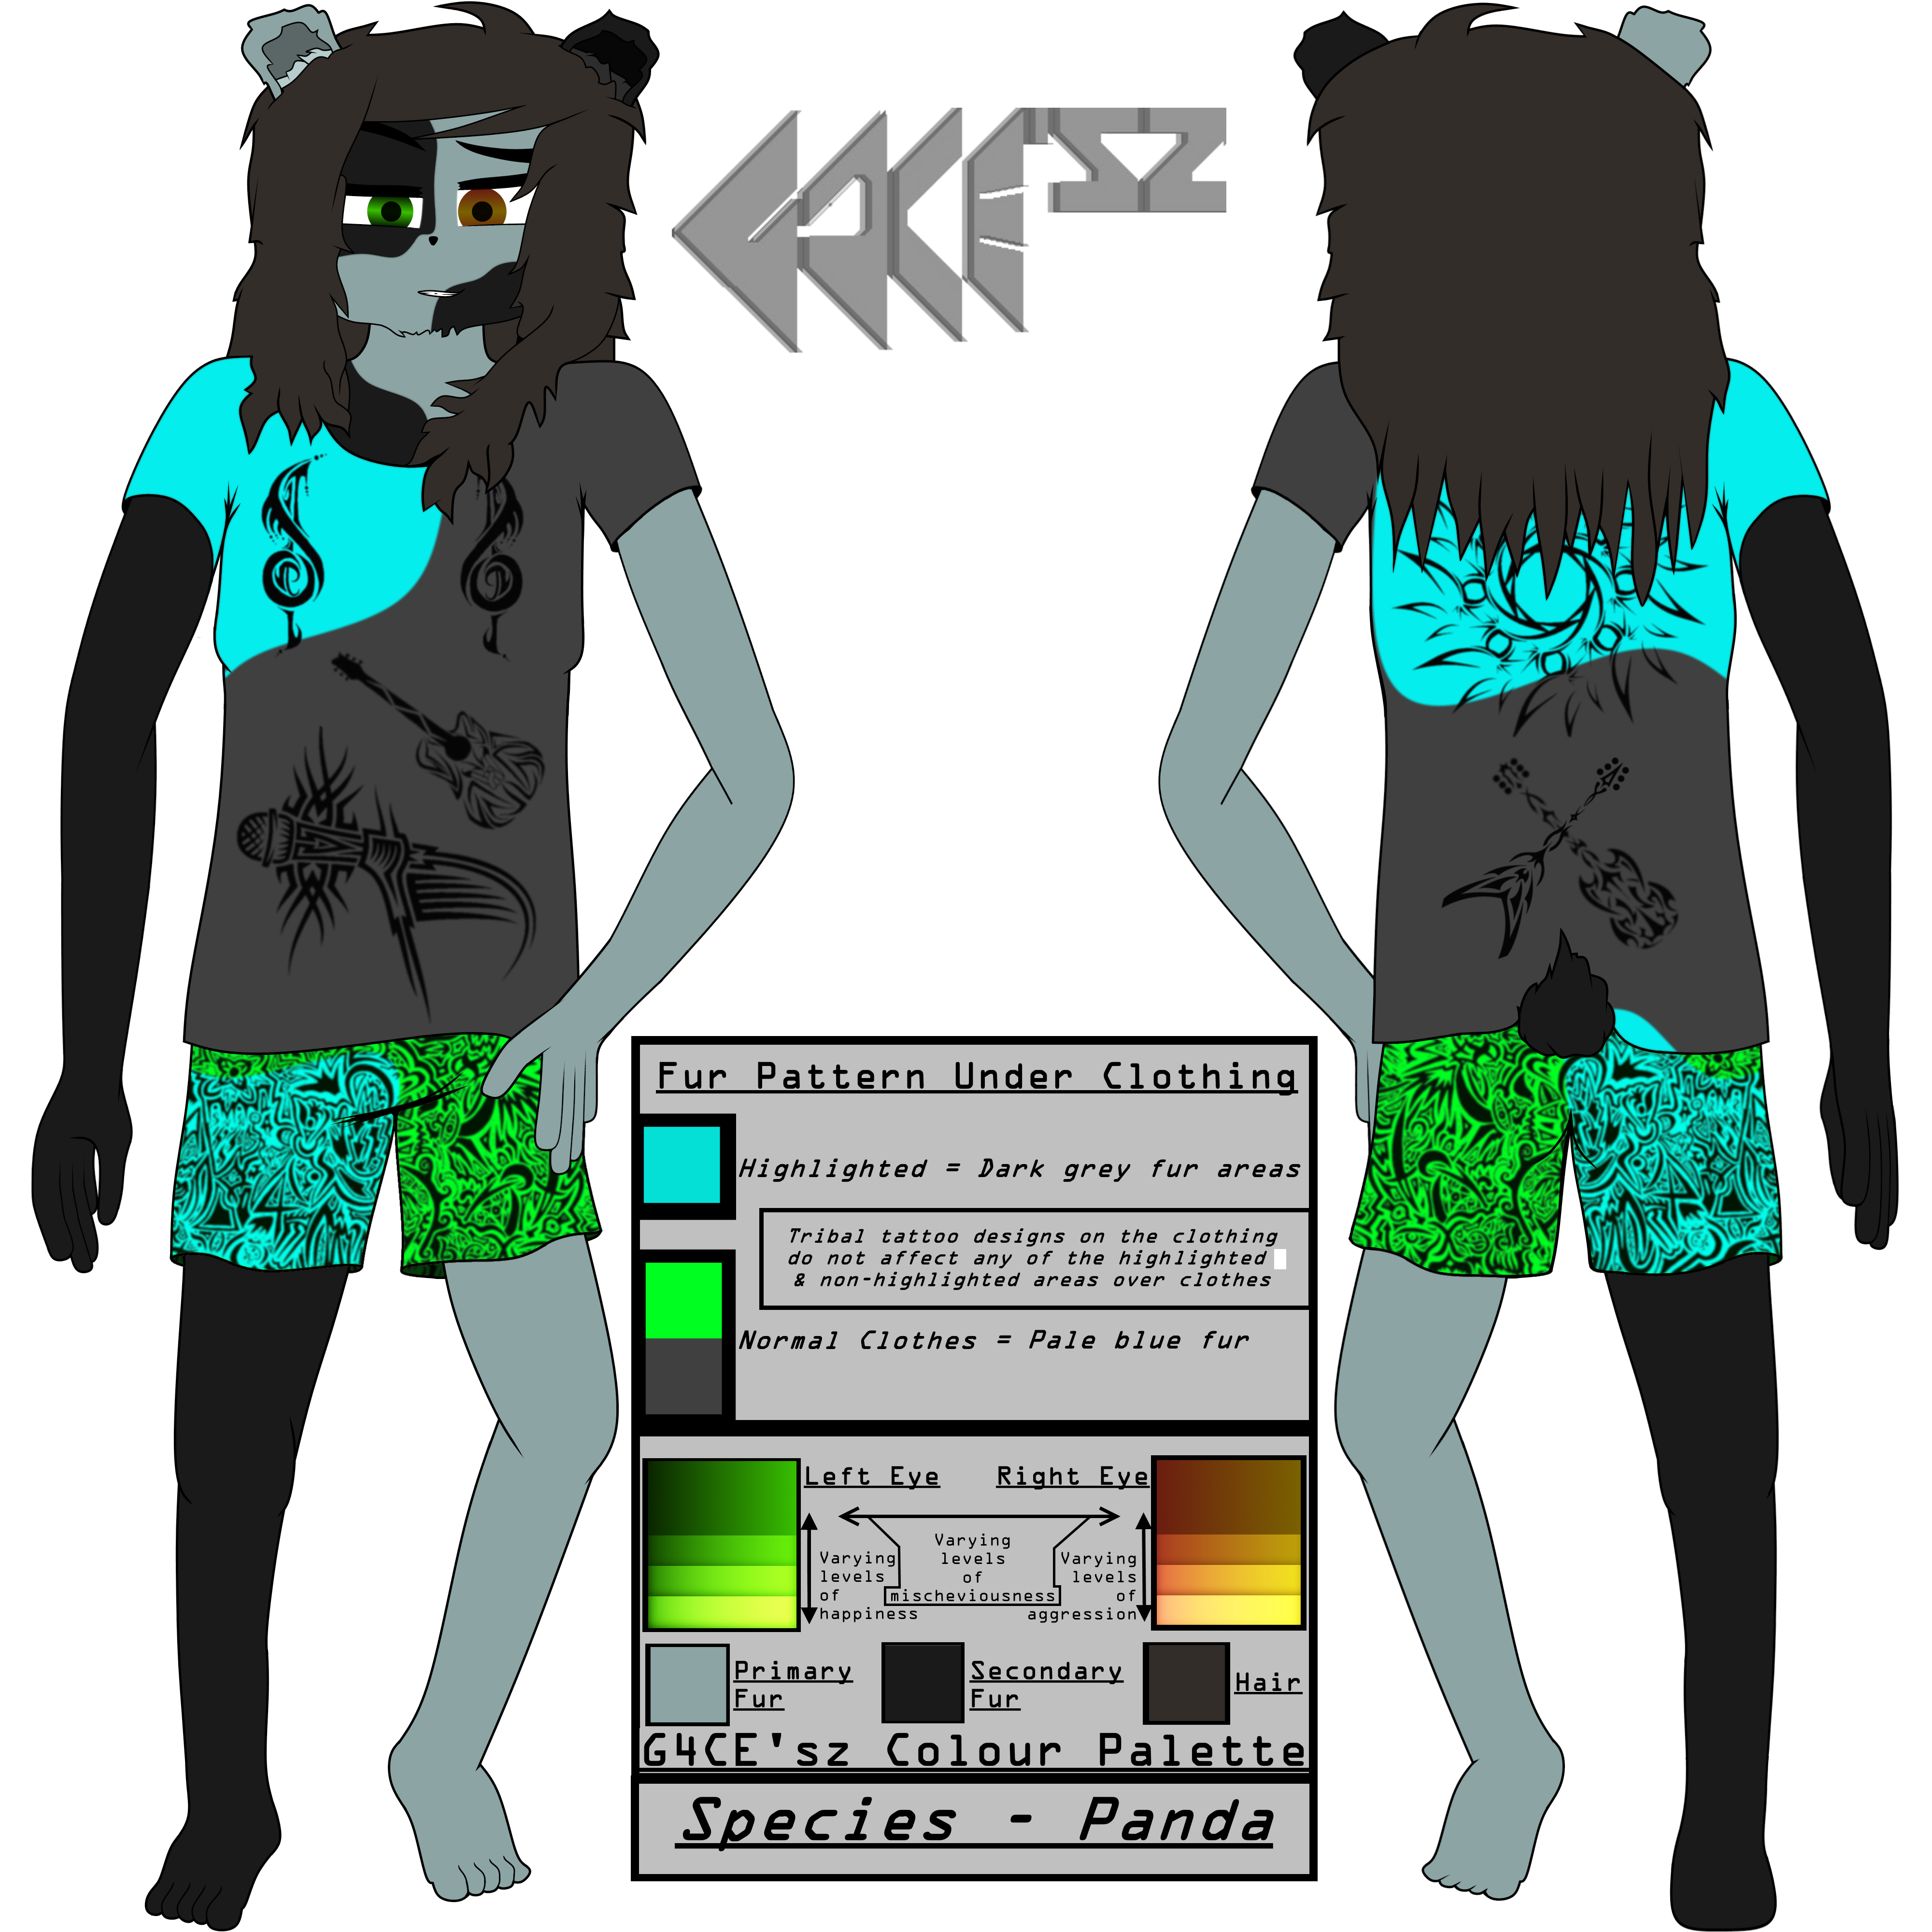 G4CE'sz Reference Sheet